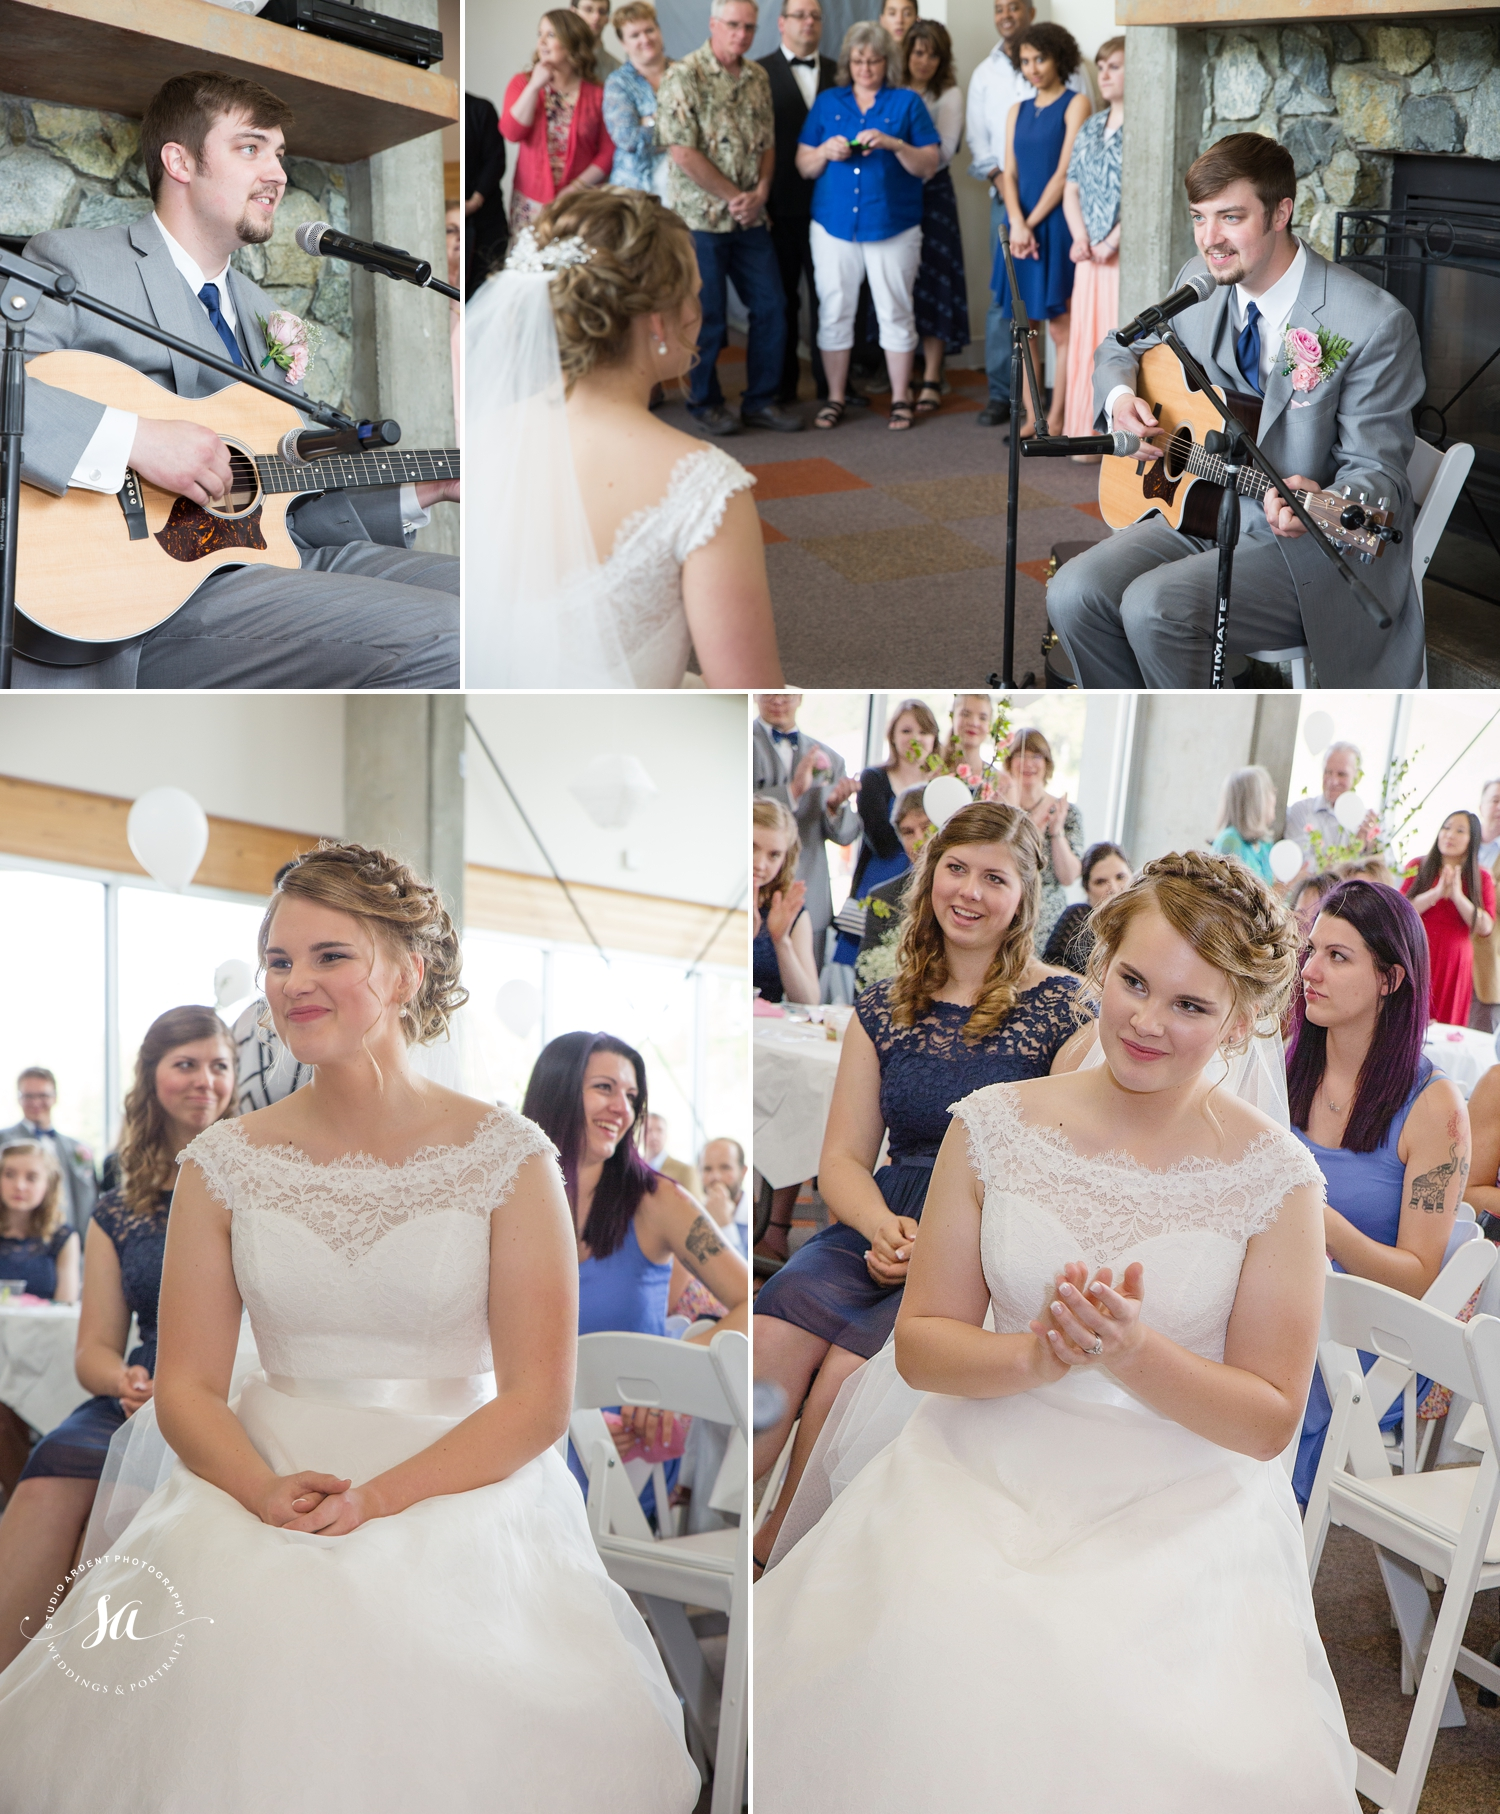 He wrote and sang a song for his bride! Pretty stinkin sweet!